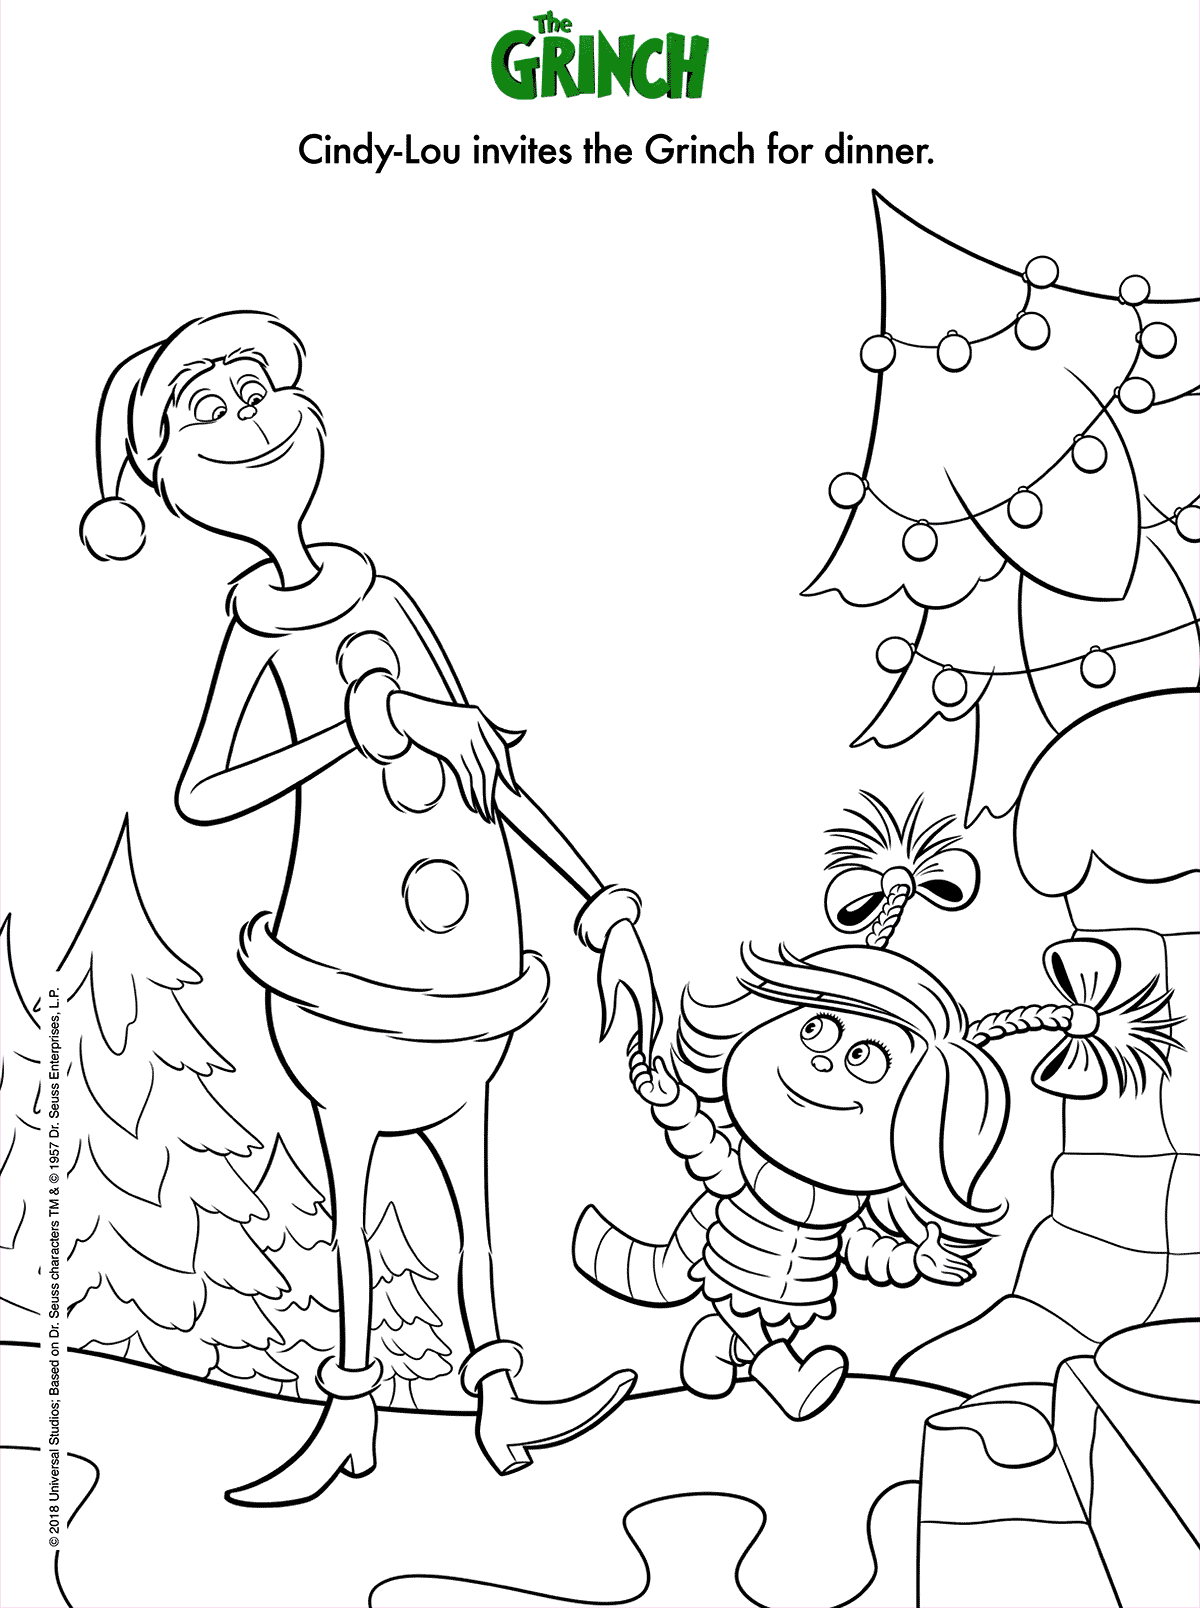 The Grinch Coloring Page Find Lots Of Beautiful Coloring